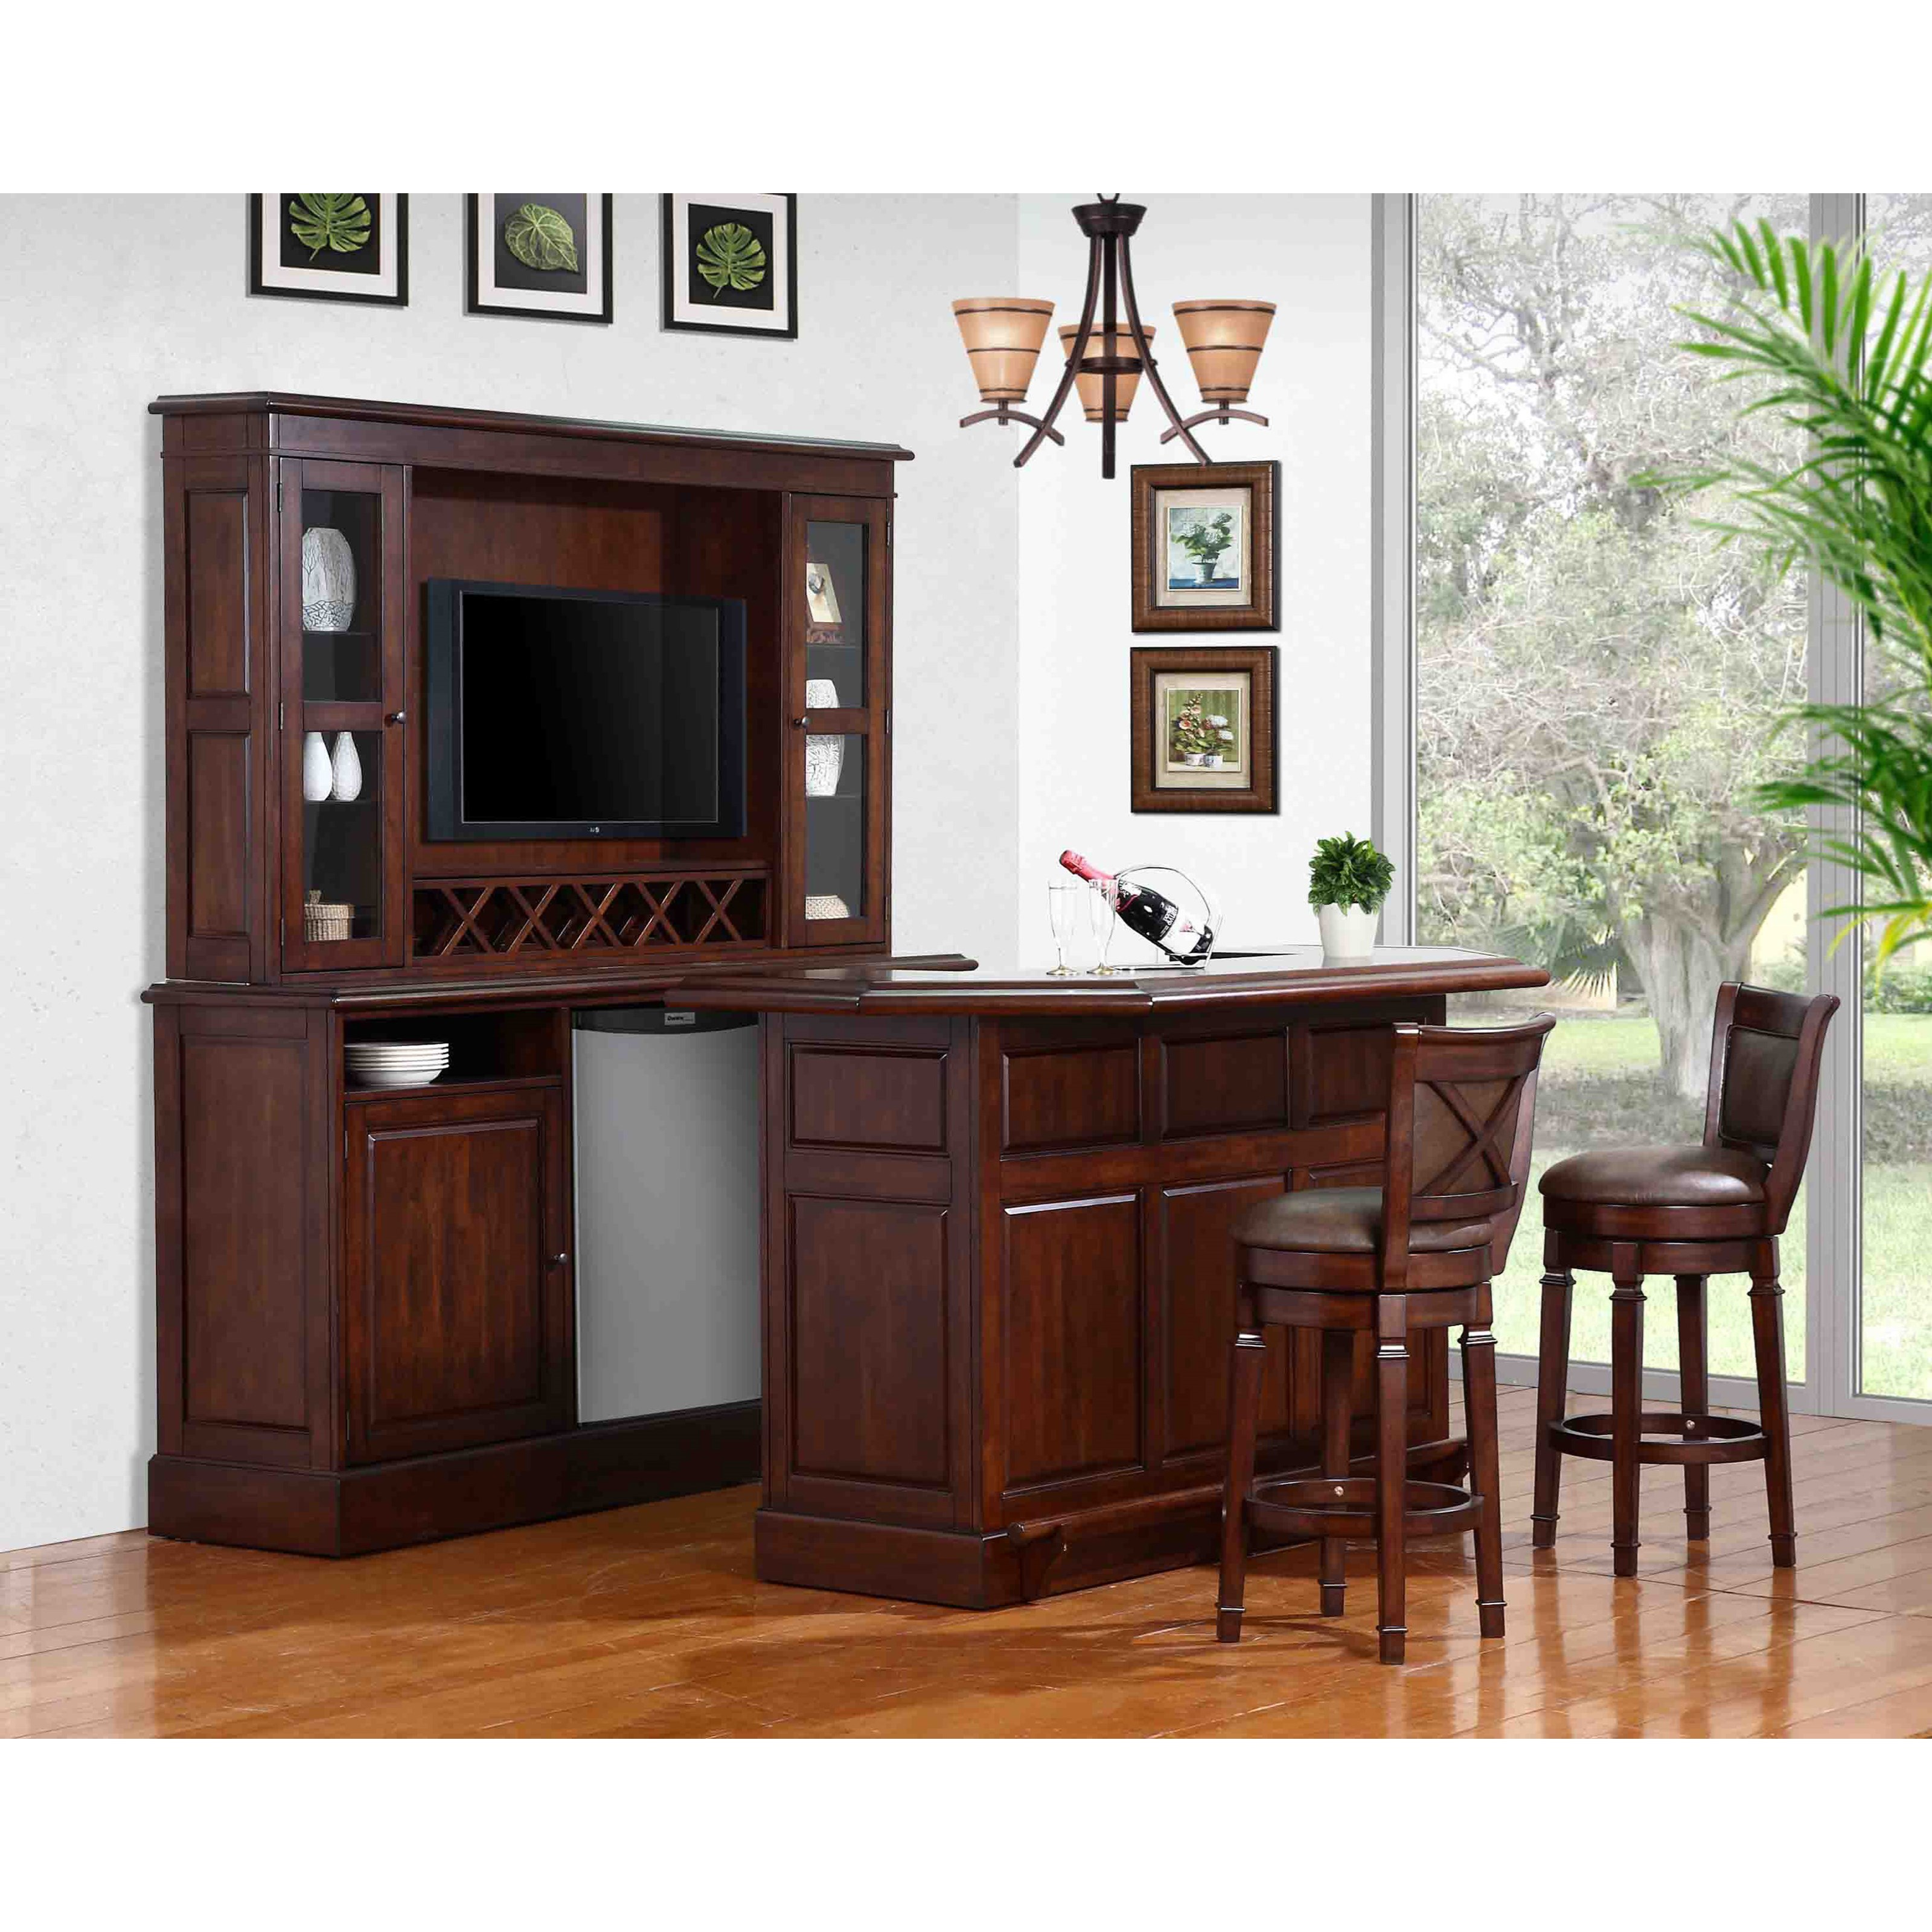 Discount Kitchen Cabinets Cleveland Ohio: E.C.I. Furniture Belvedere-0411 Bar With Built-In Wine